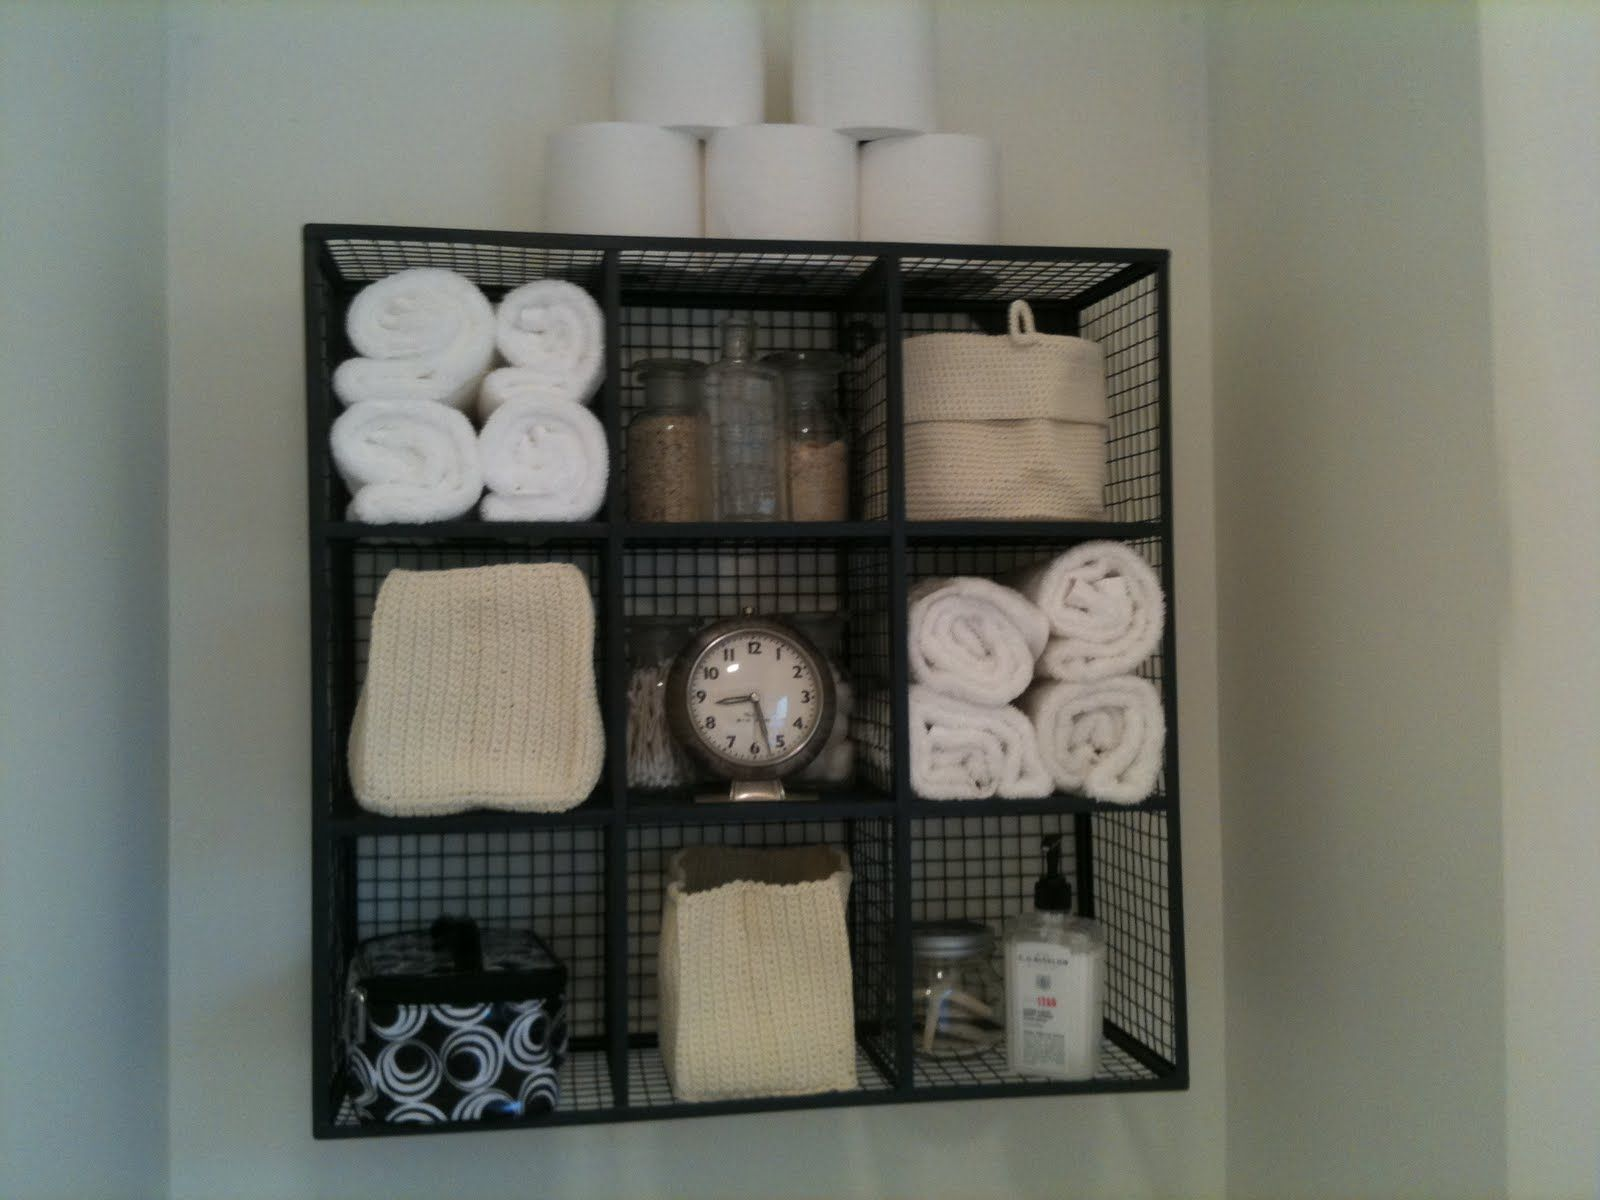 Bathroom wall storage ideas - 1000 Ideas About Toilet Storage On Pinterest Over Toilet Storage Toilet Room And Powder Room Storage